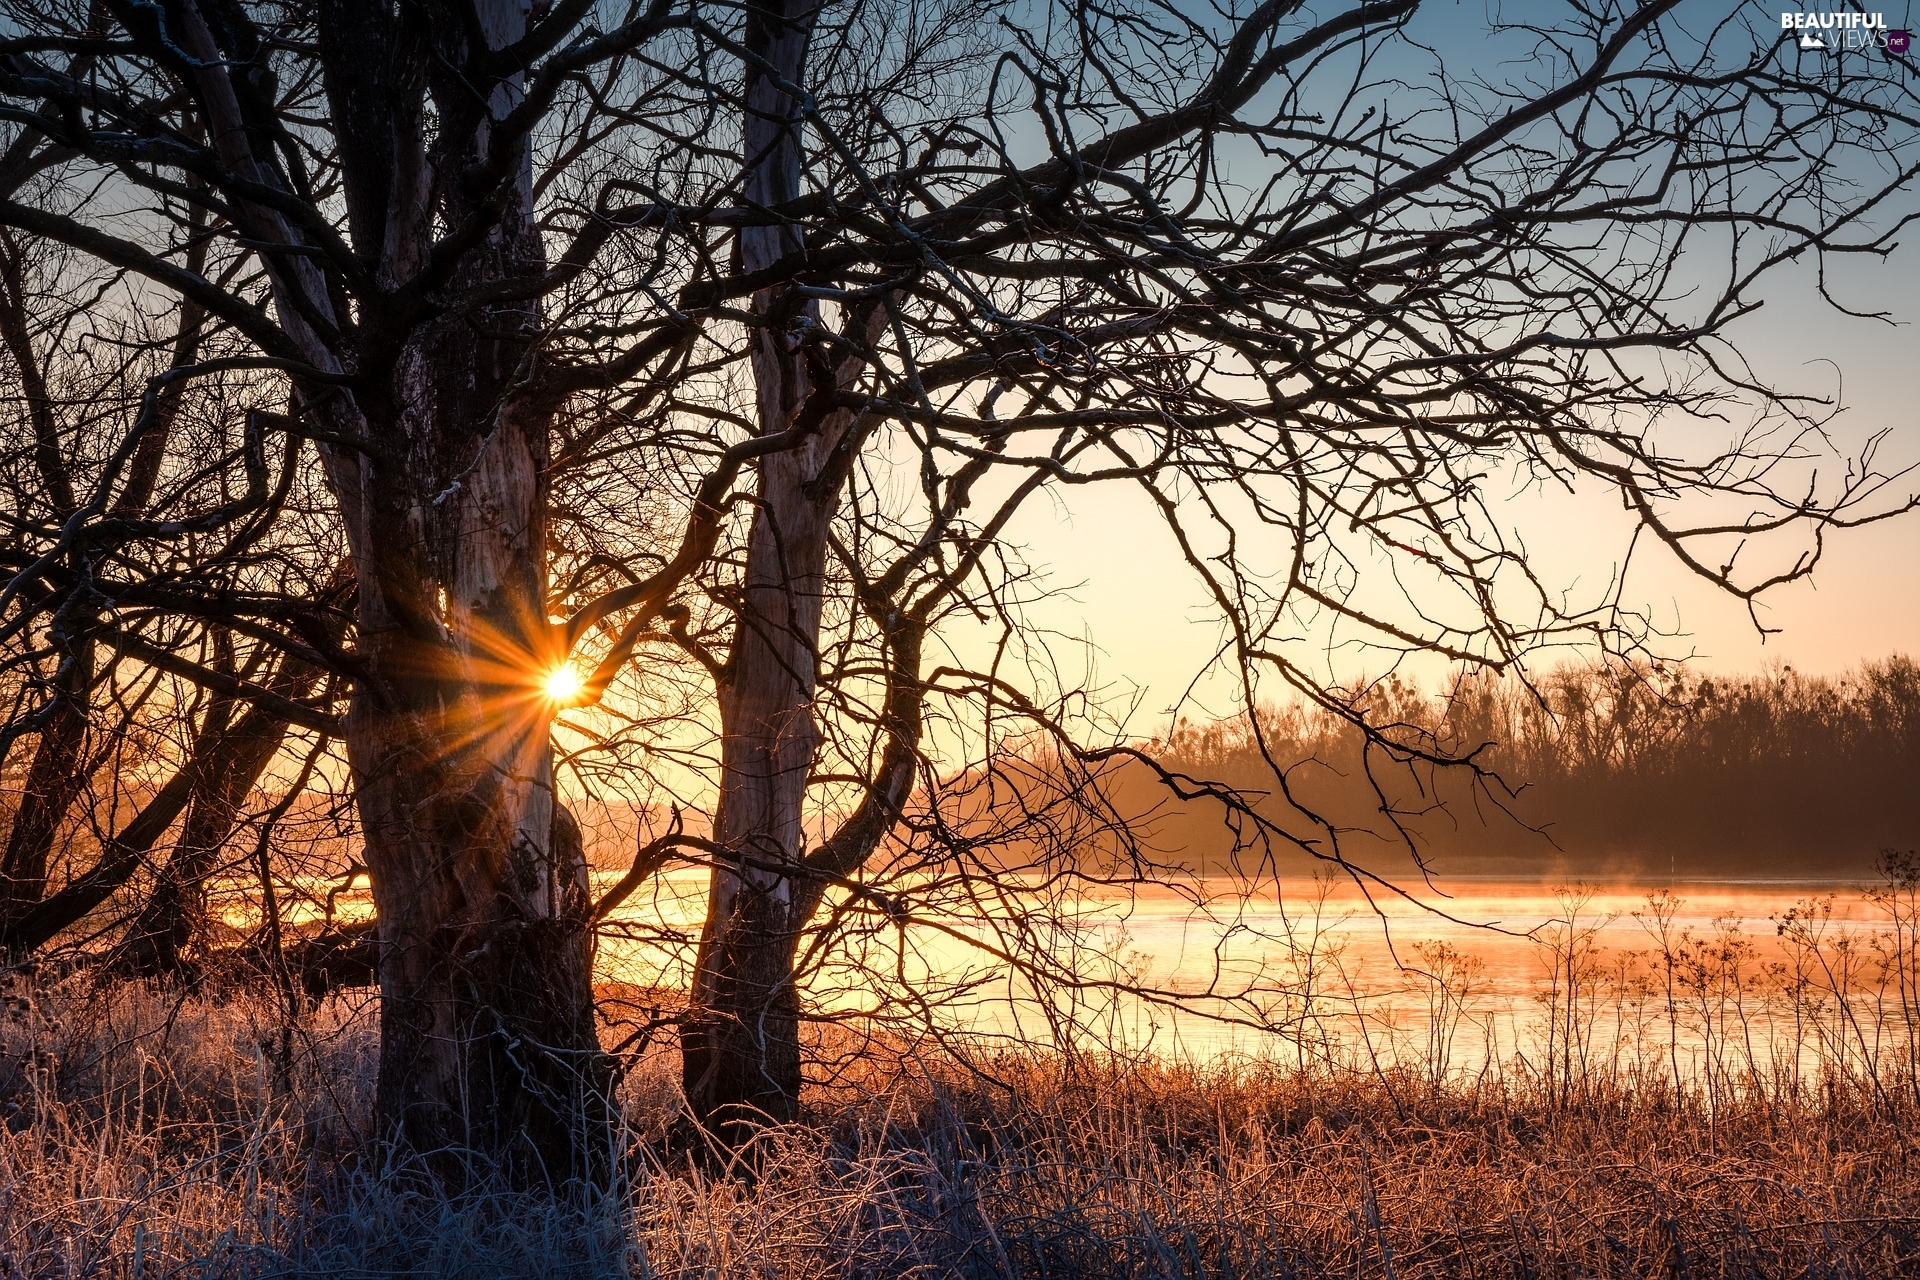 trees, River, rays of the Sun, grass, viewes, leafless